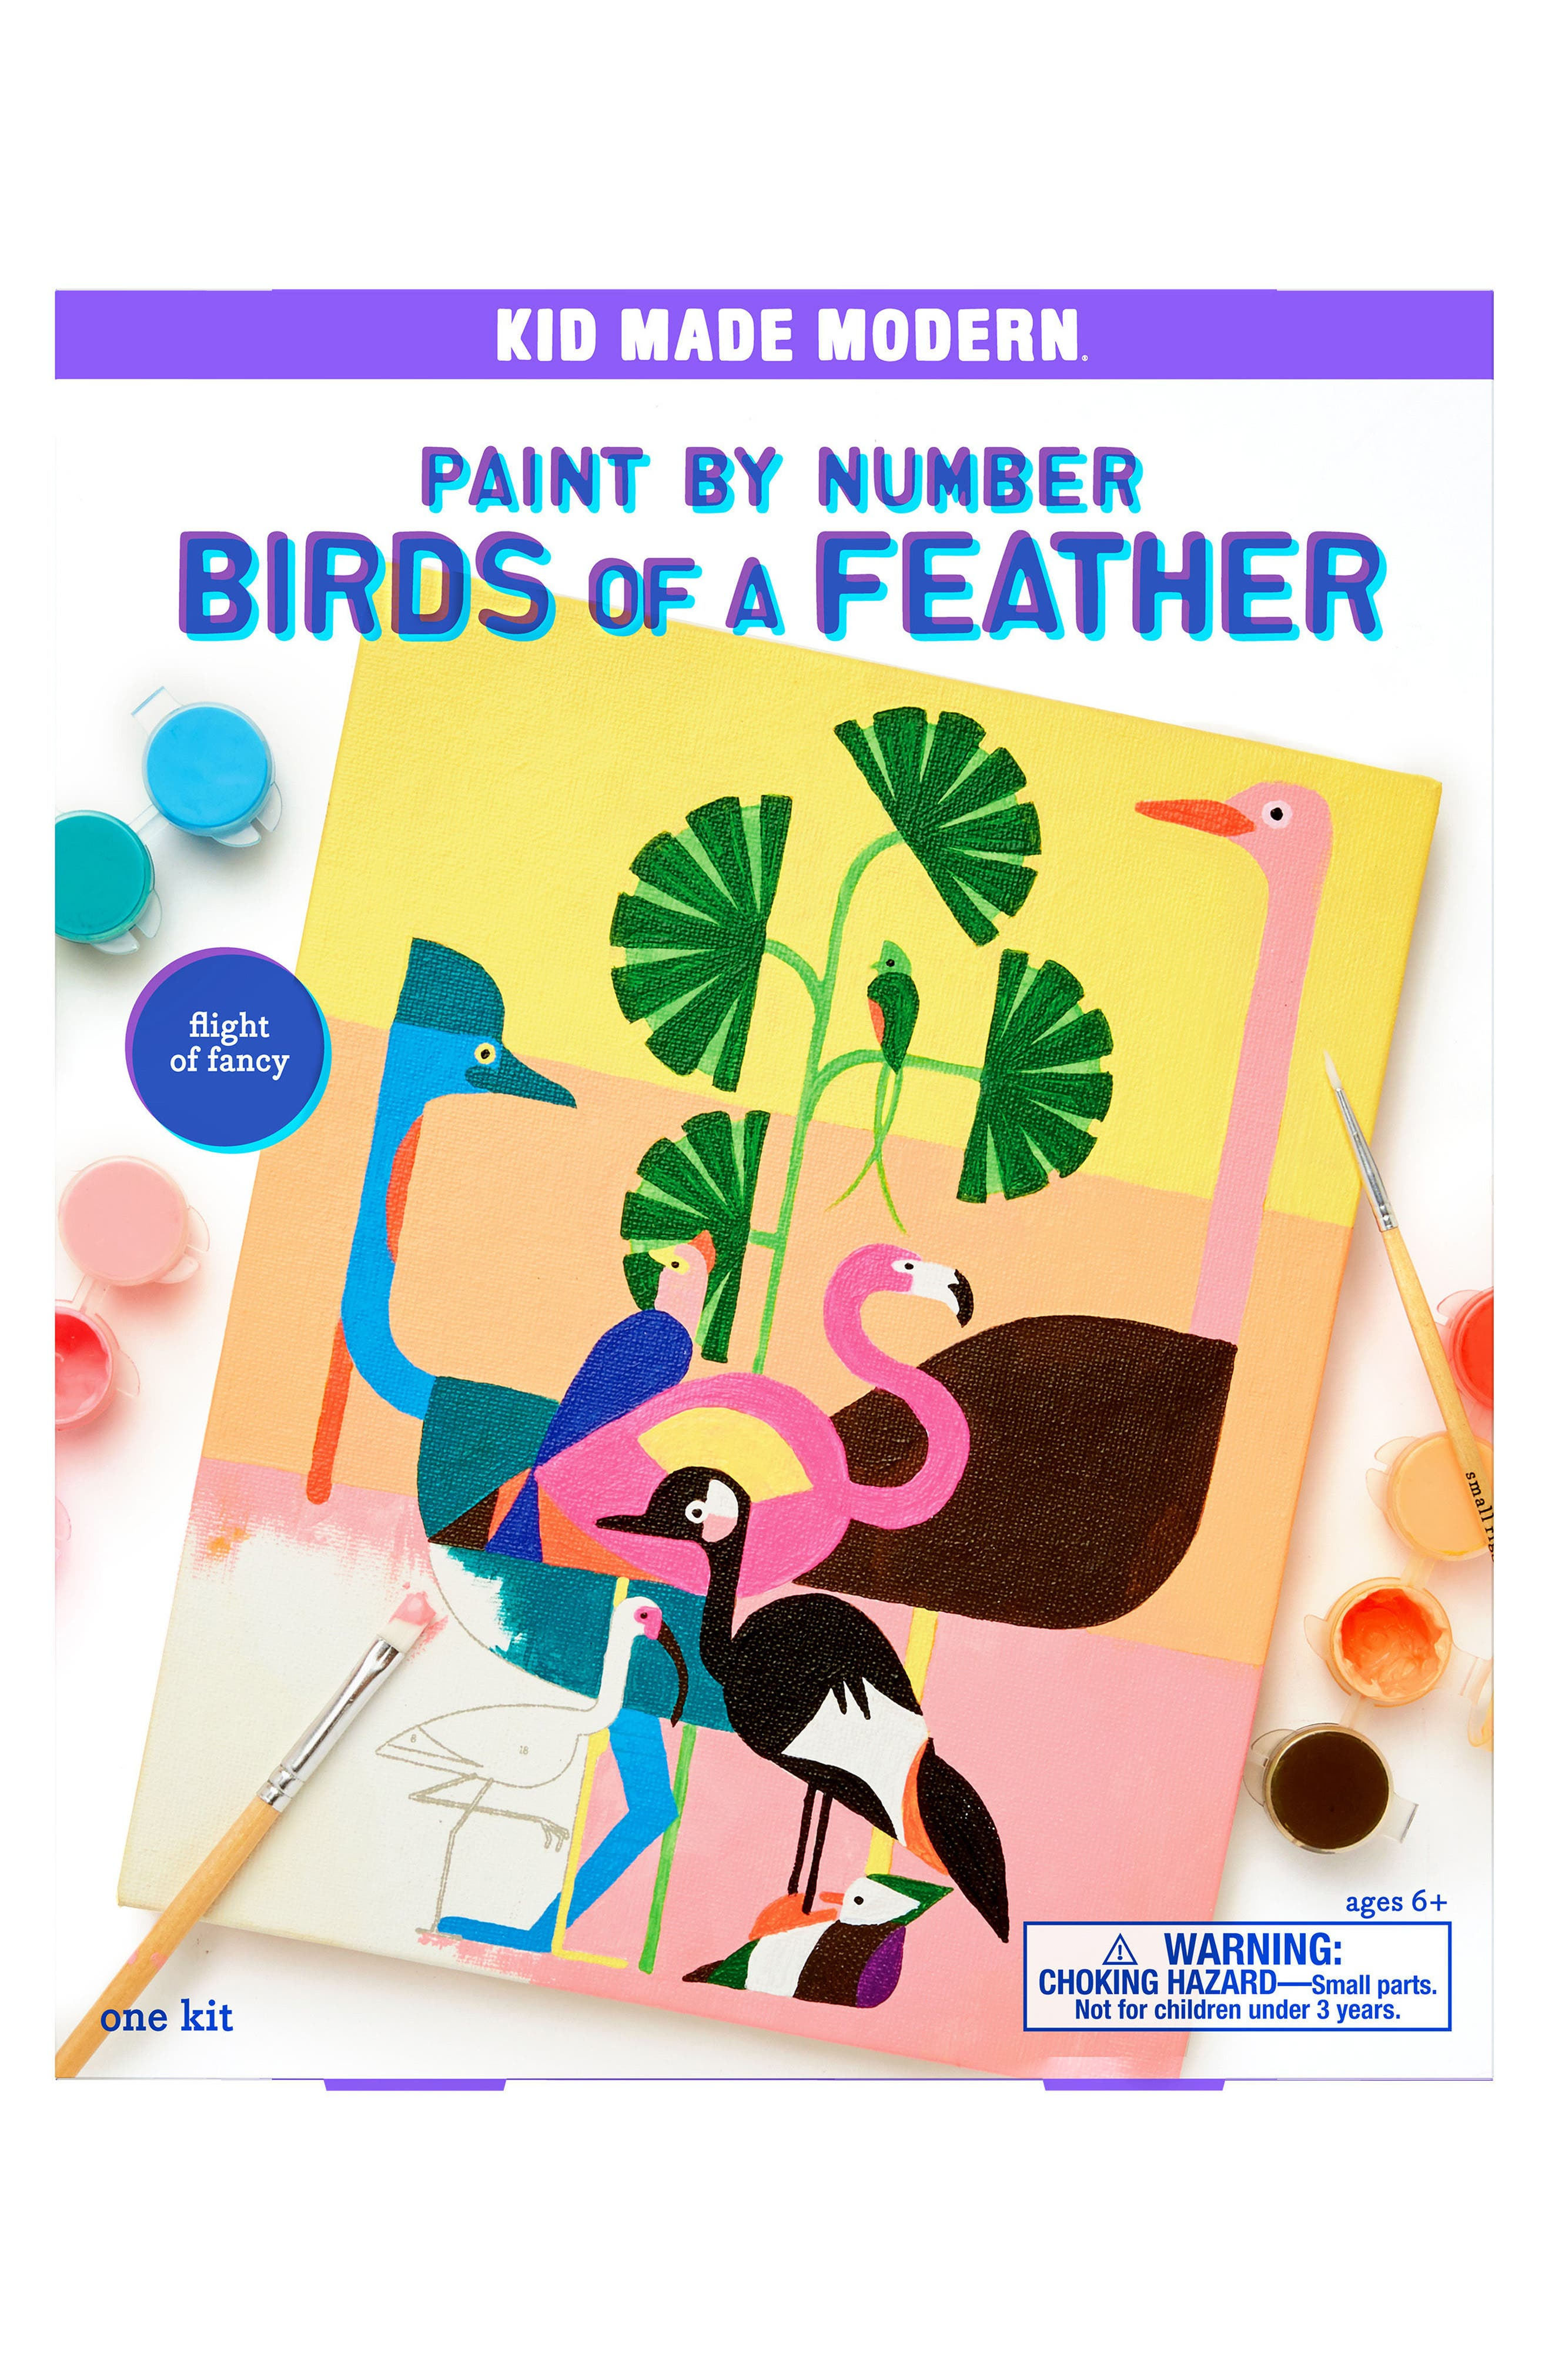 Kid Made Modern Birds of a Feather Paint by Number Kit